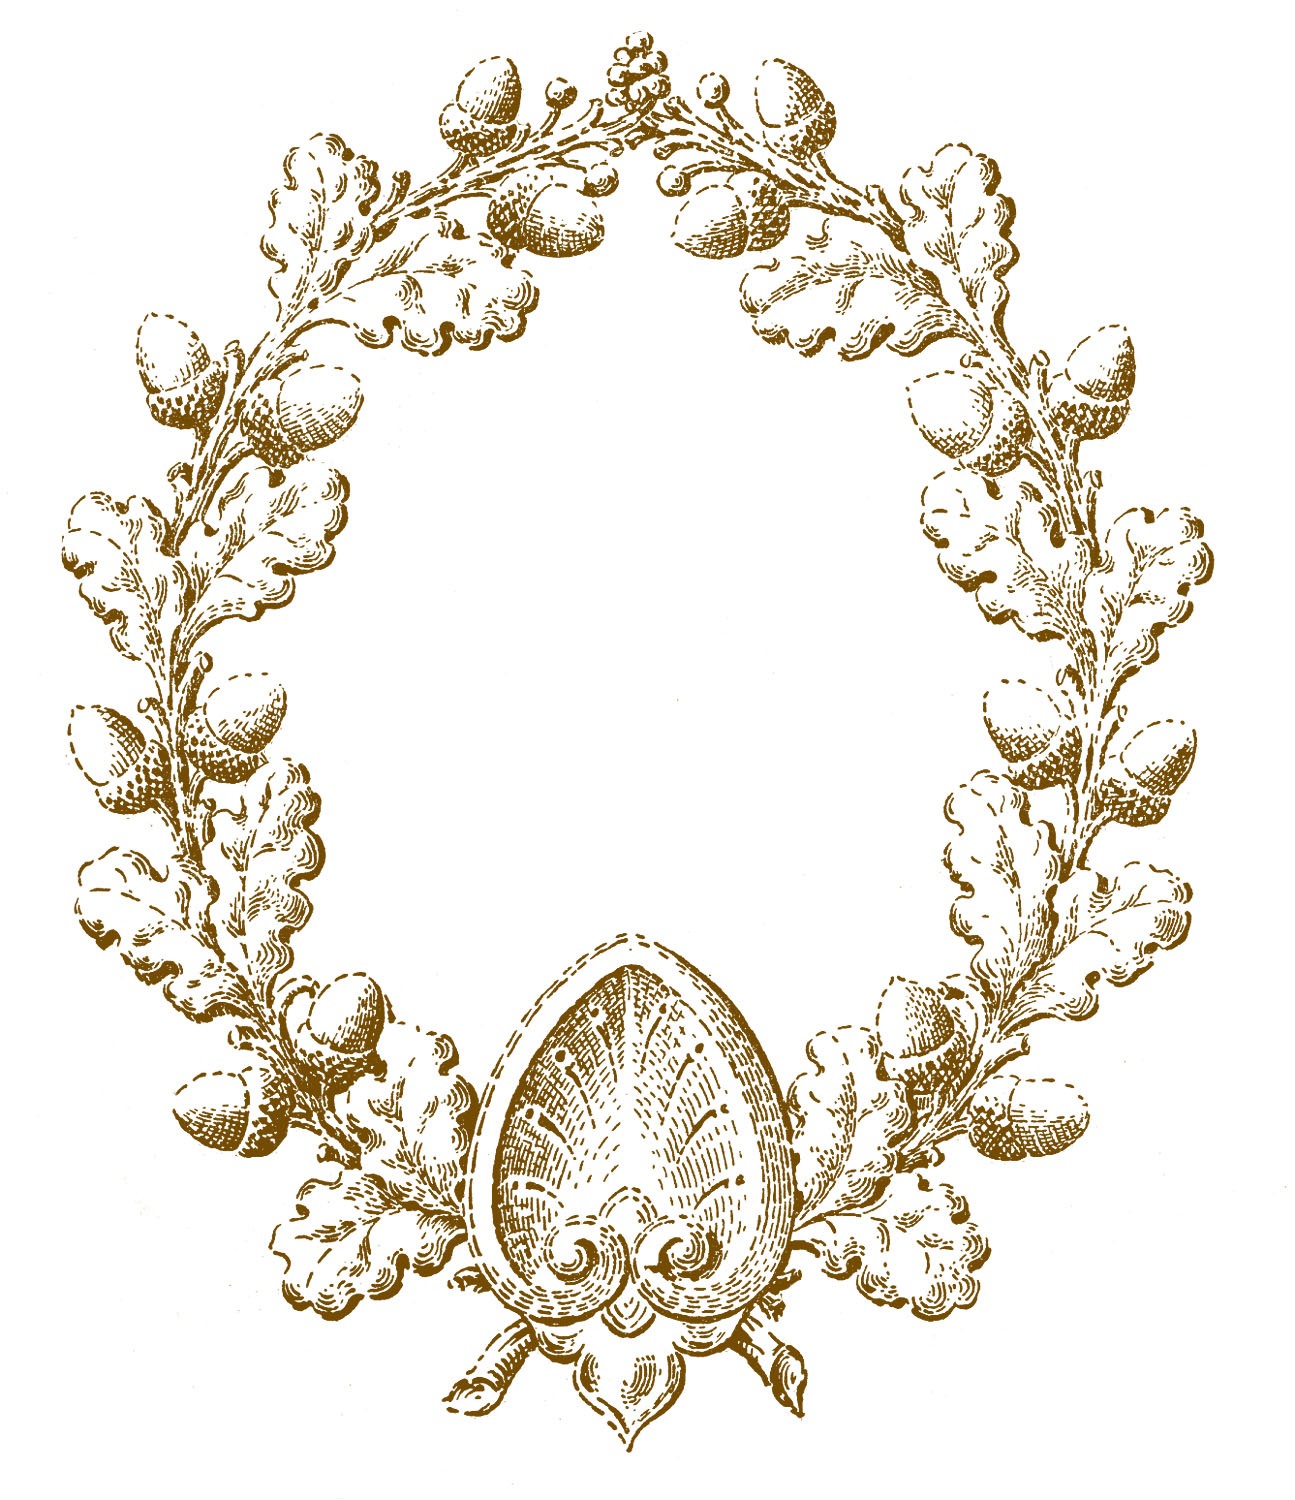 Oak Leaf and Acorn Wreath Image